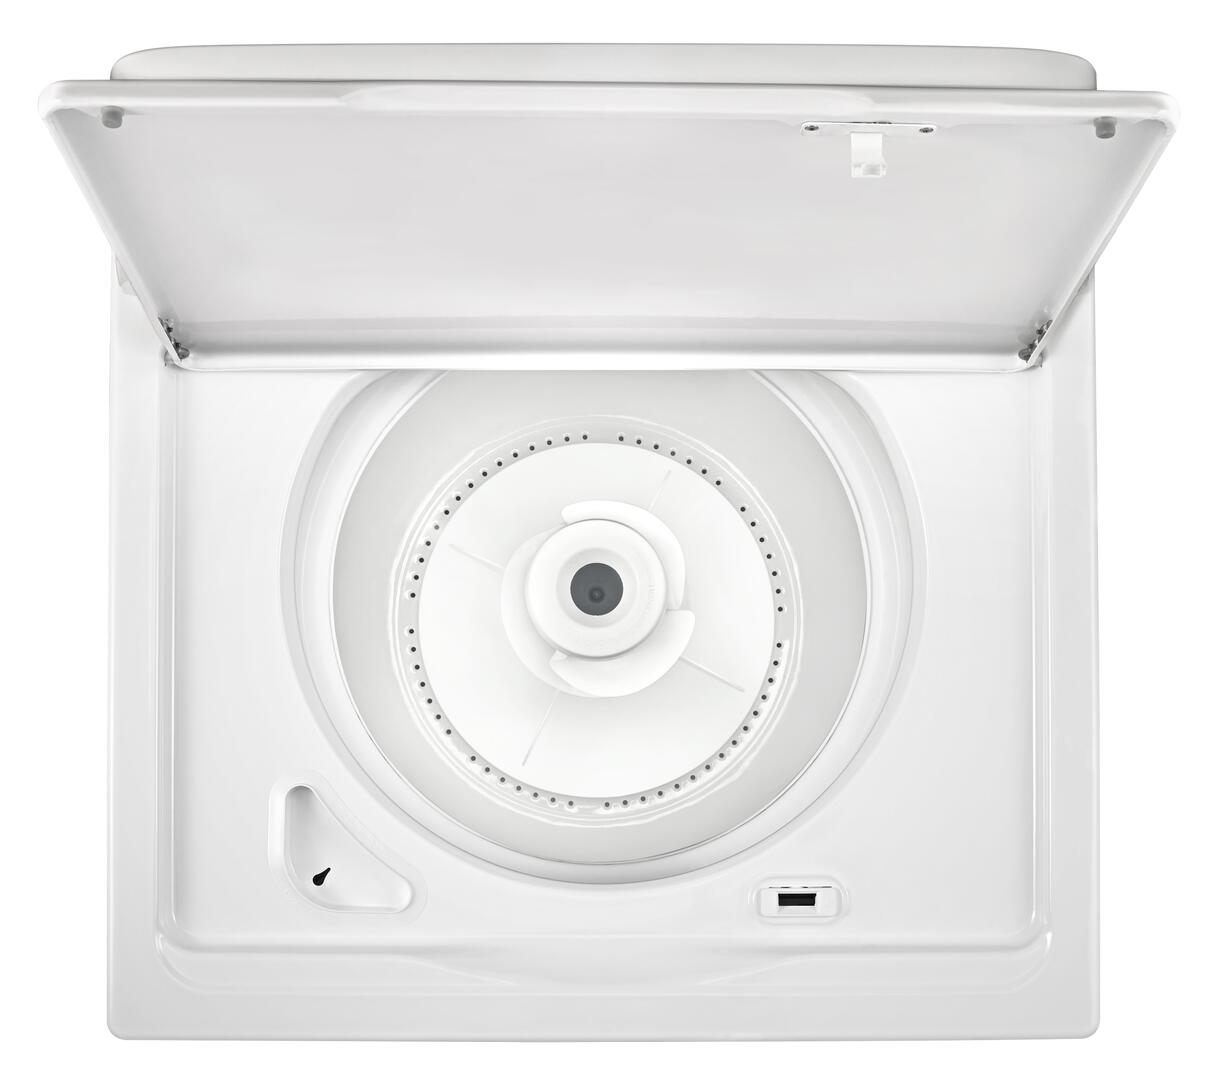 Whirlpool Wtw4616fw 28 Inch White 3 5 Cu Ft Top Load